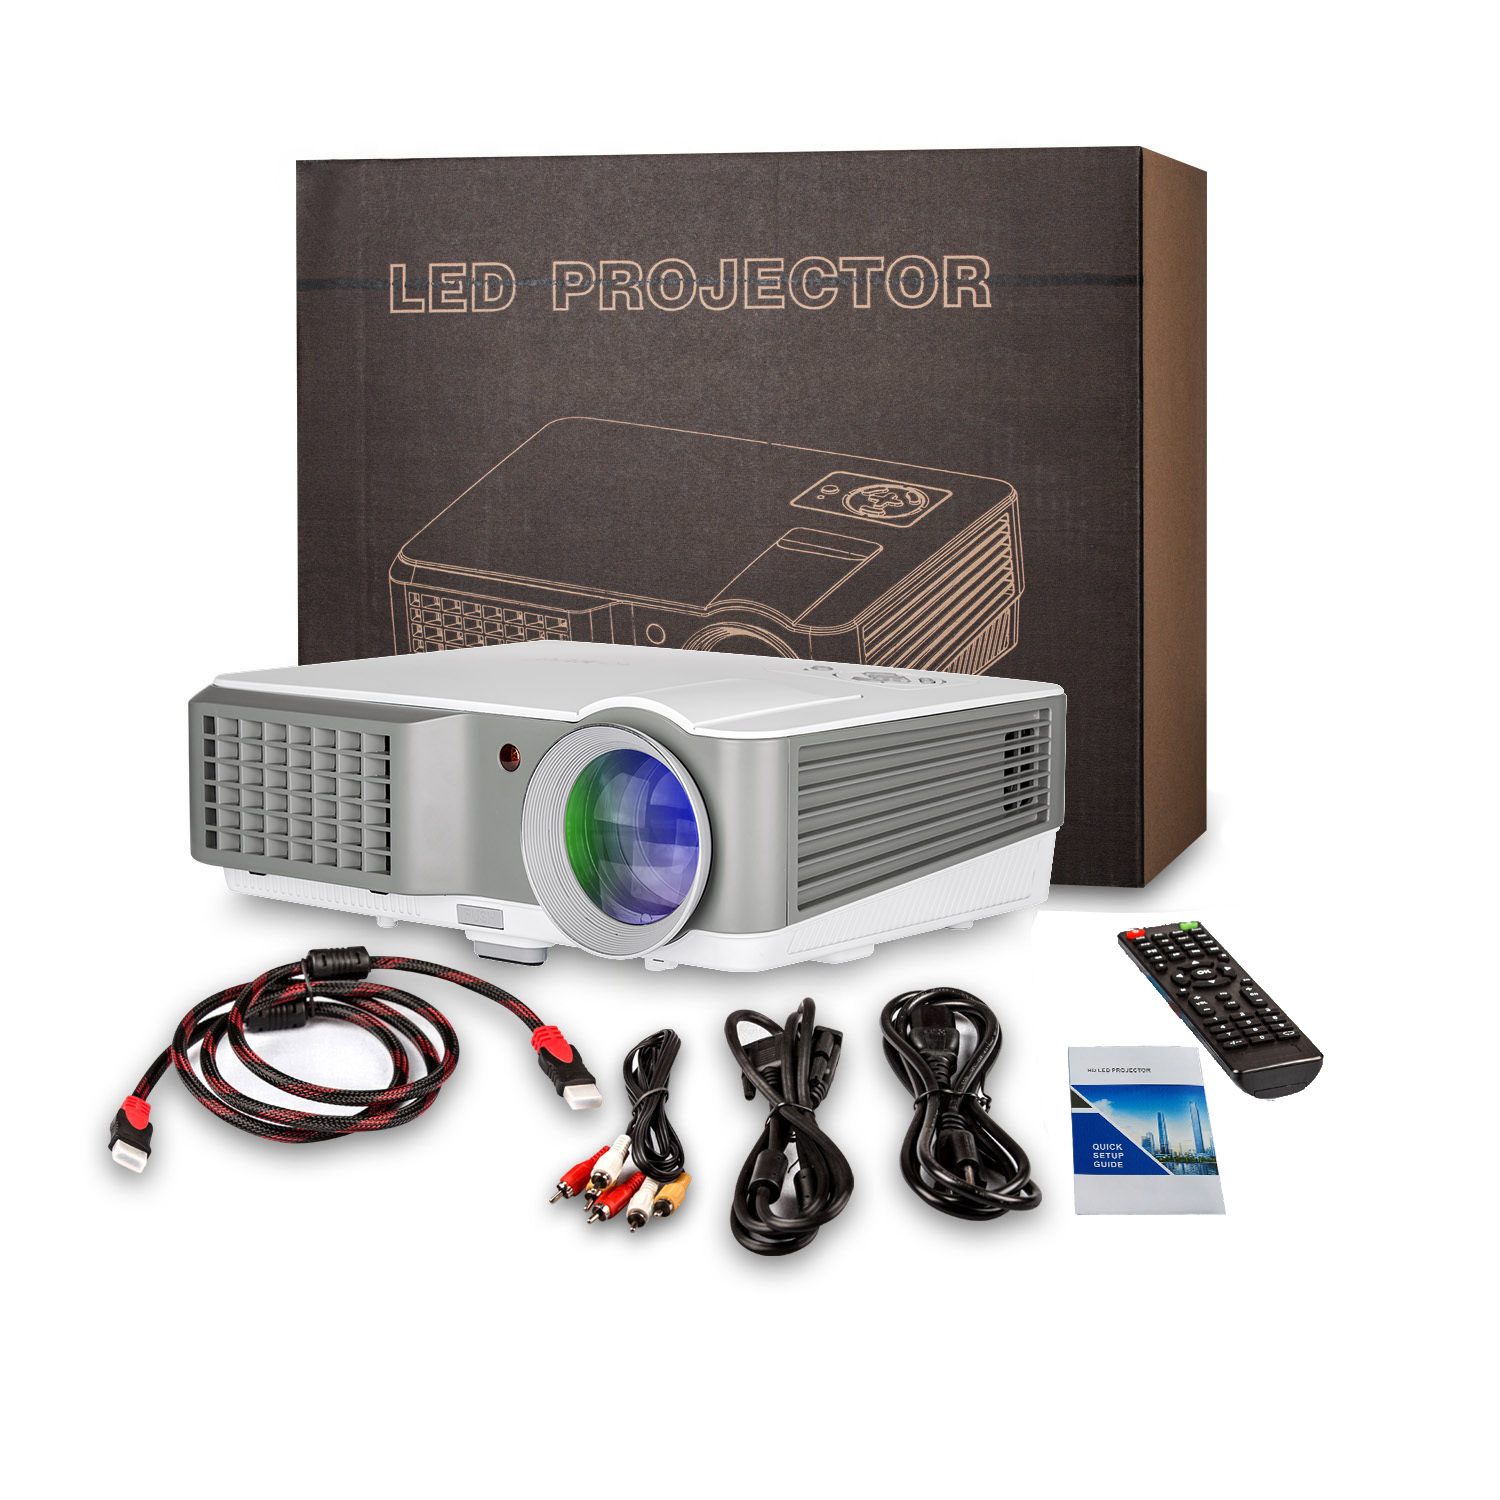 4000lm Projector Hd Lcd Led Home Theater Projector: 4000lm HD Projector Multimedia Home Theater Video HDMI*2